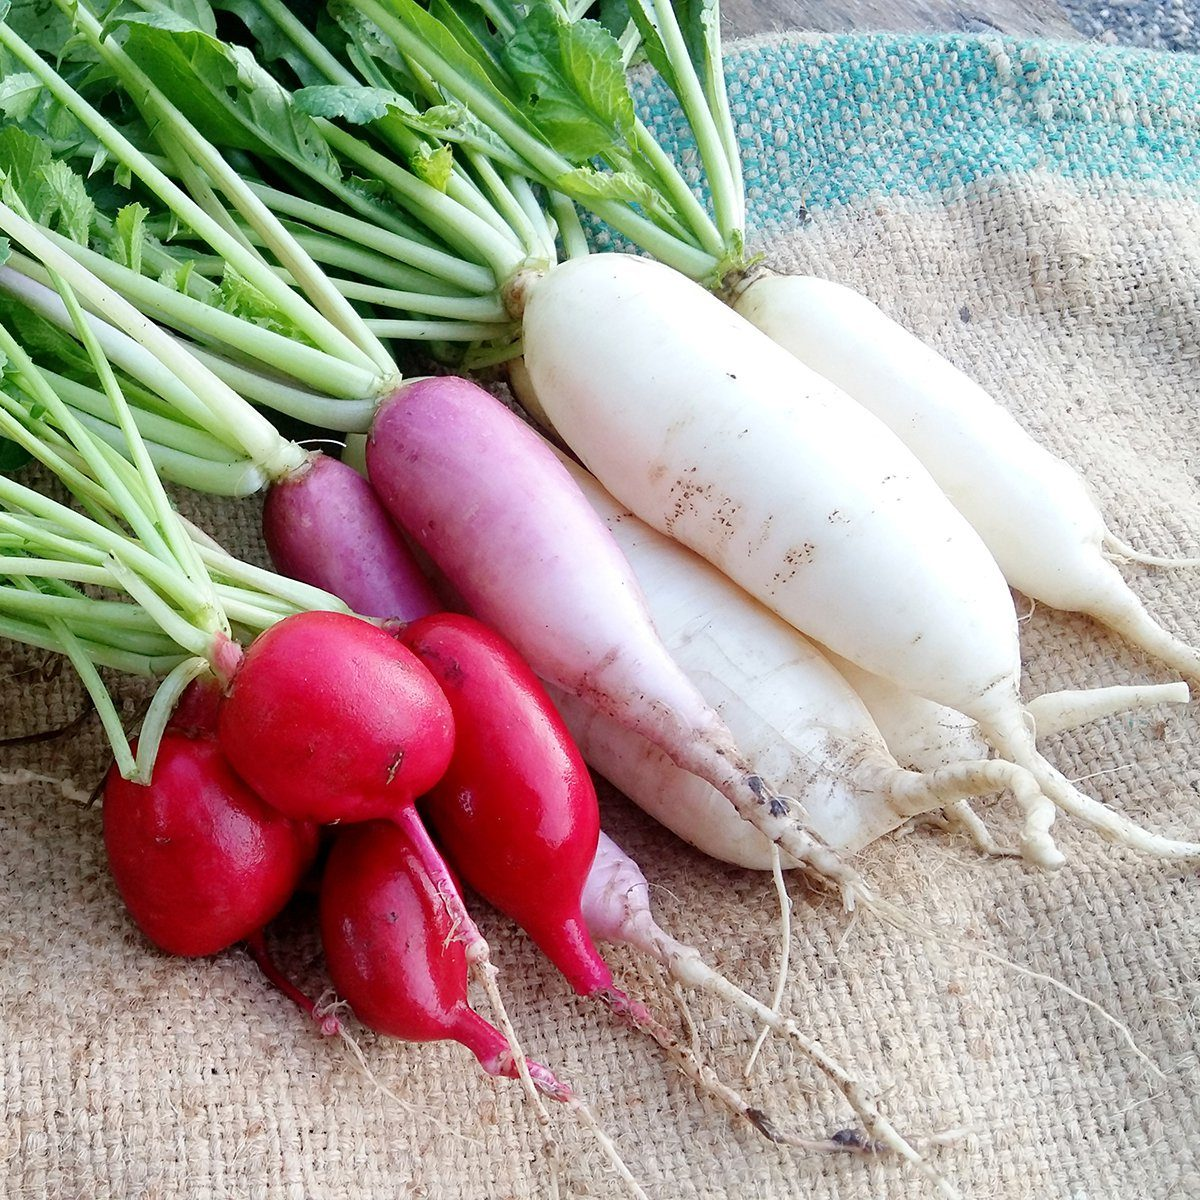 White radishes and radishes, purple and Radish that are snugly and beautifully arranged.